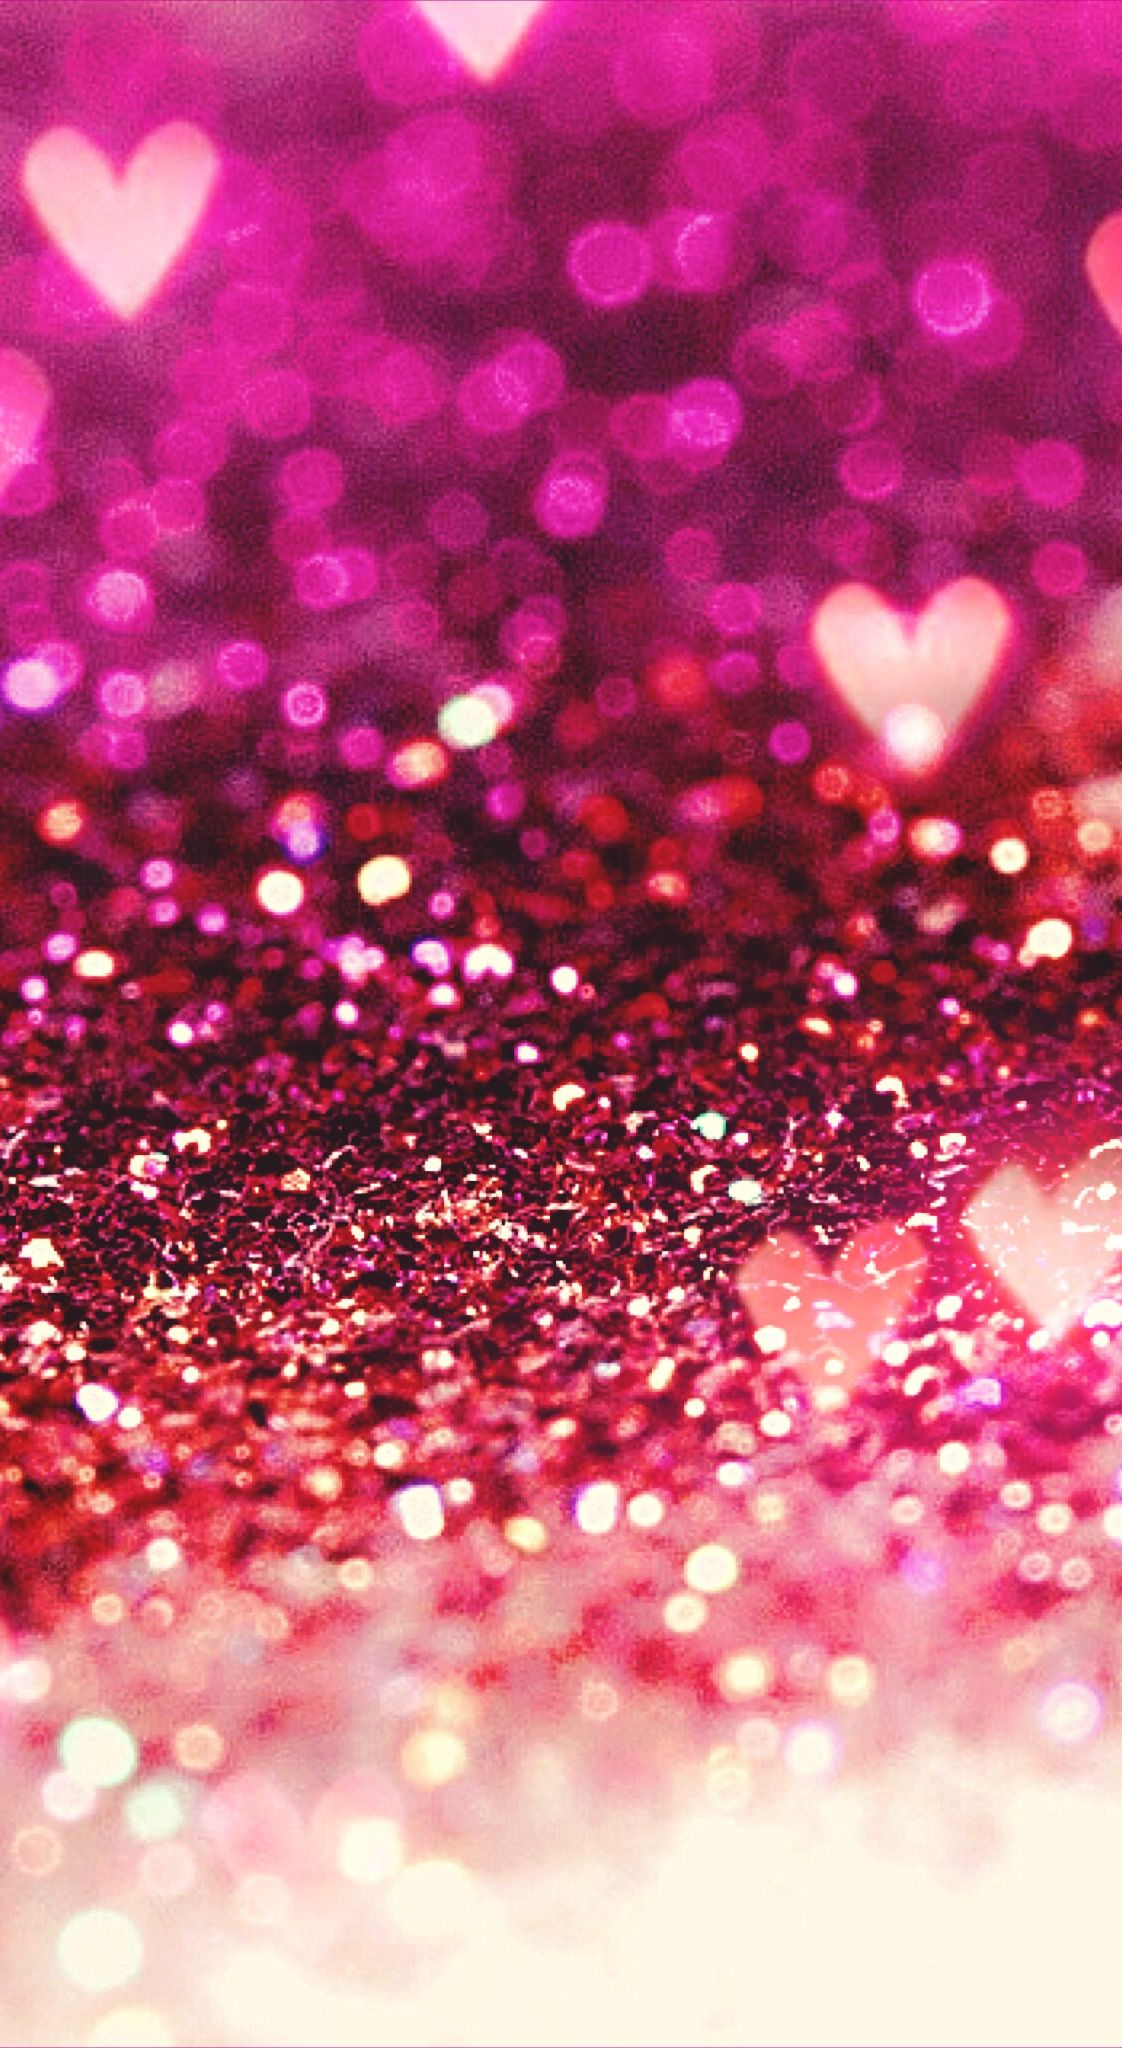 Glitter phone wallpaper | My glitter phone wallpaper in ...